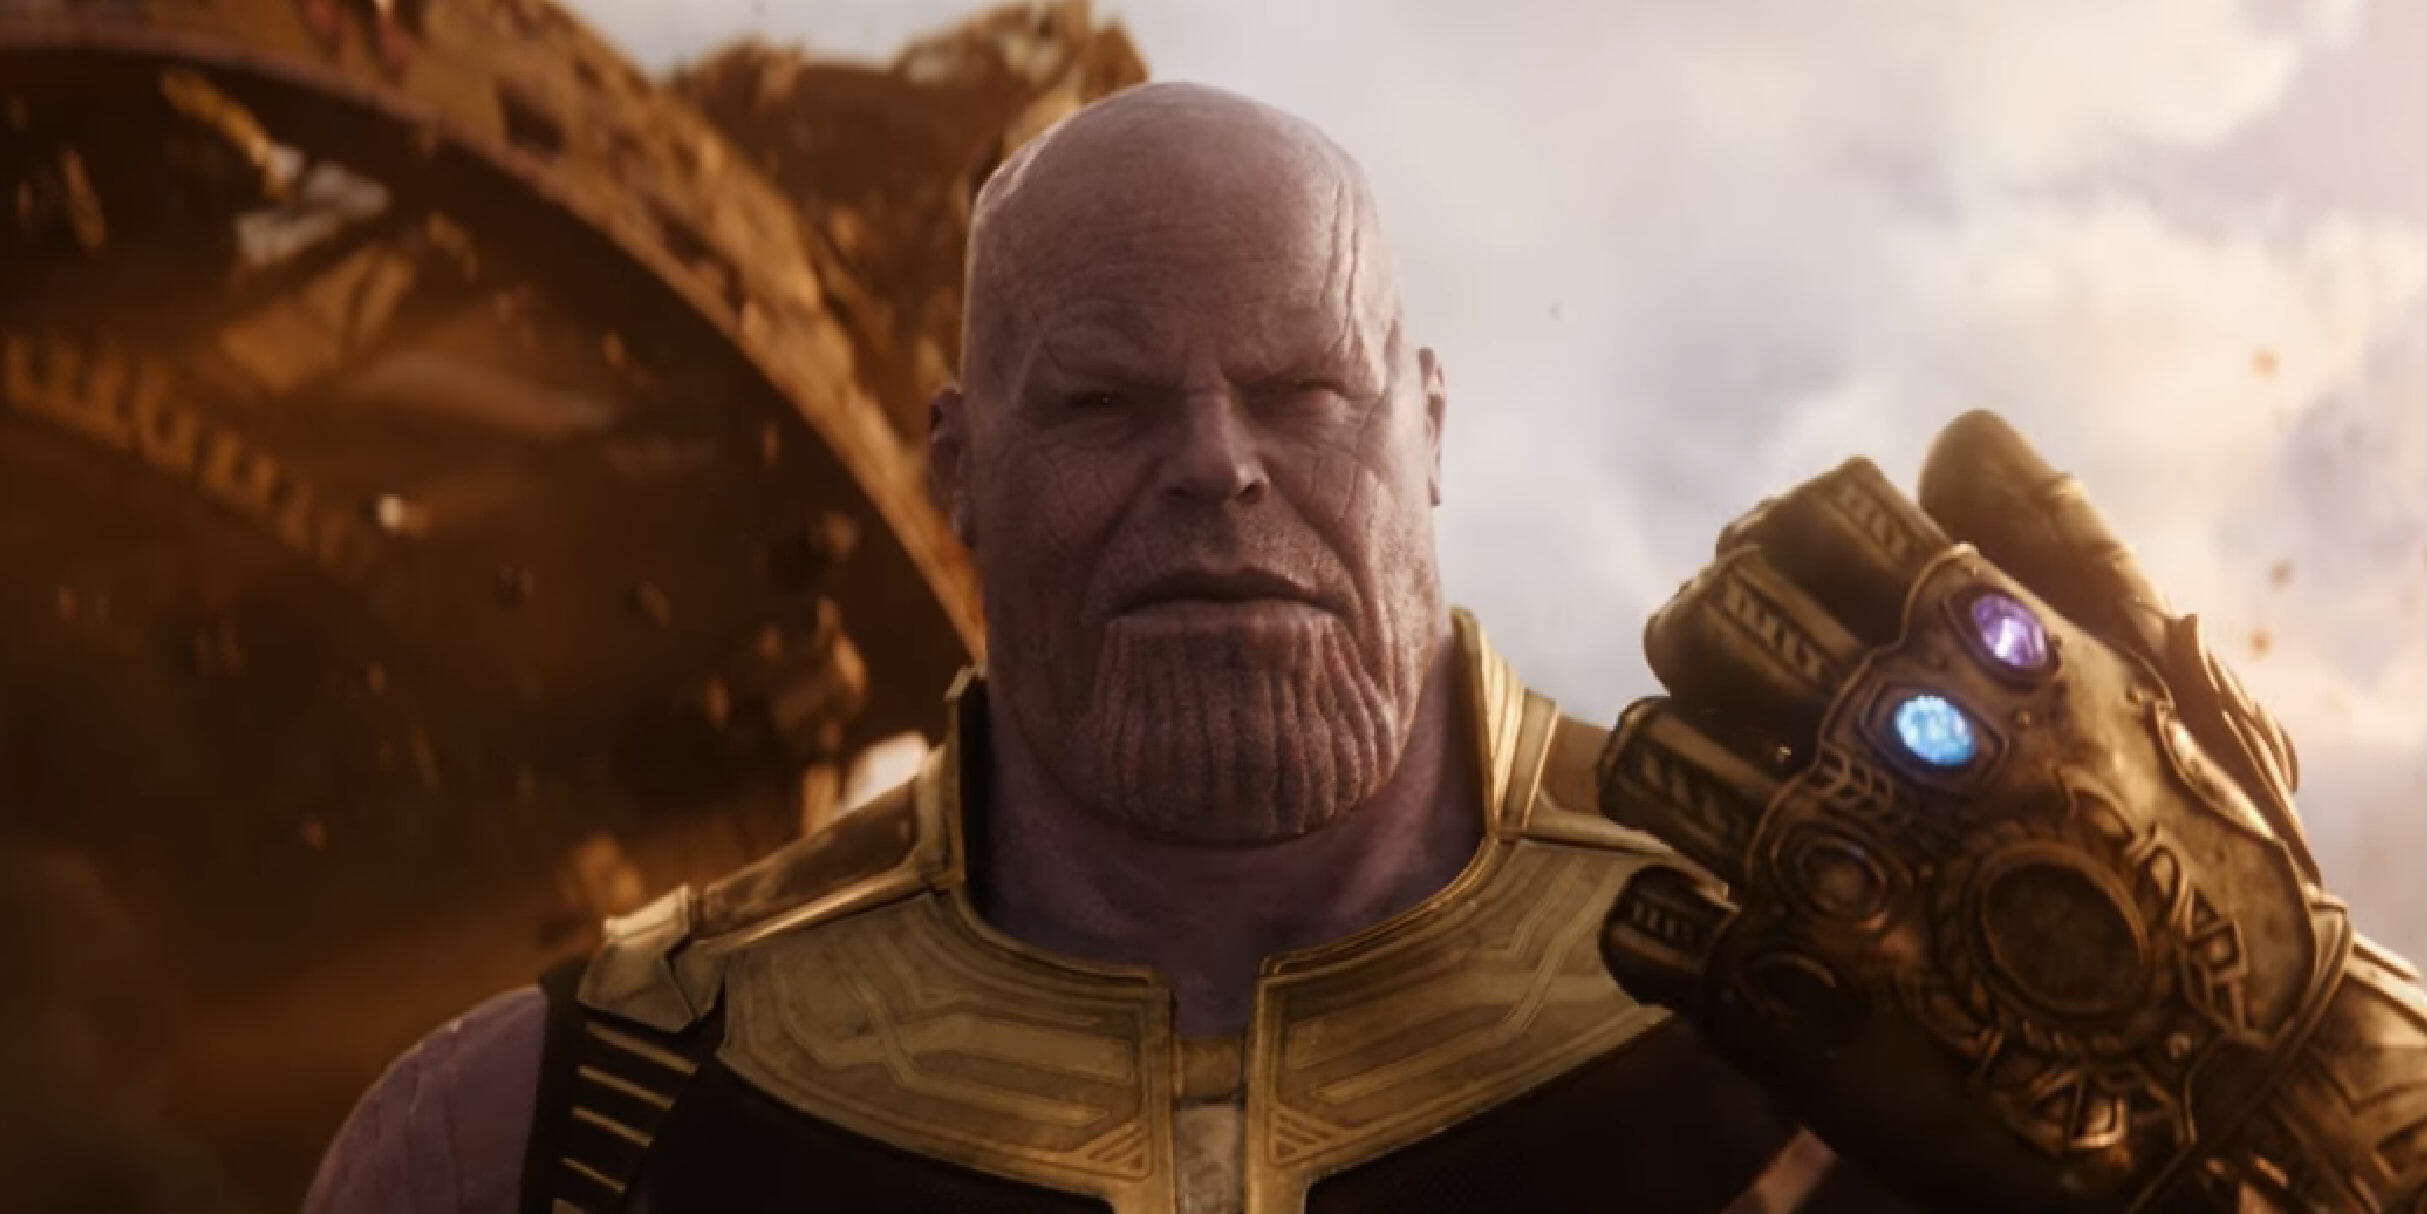 Watch Infinity War's Thanos ban more than 350K people on Reddit